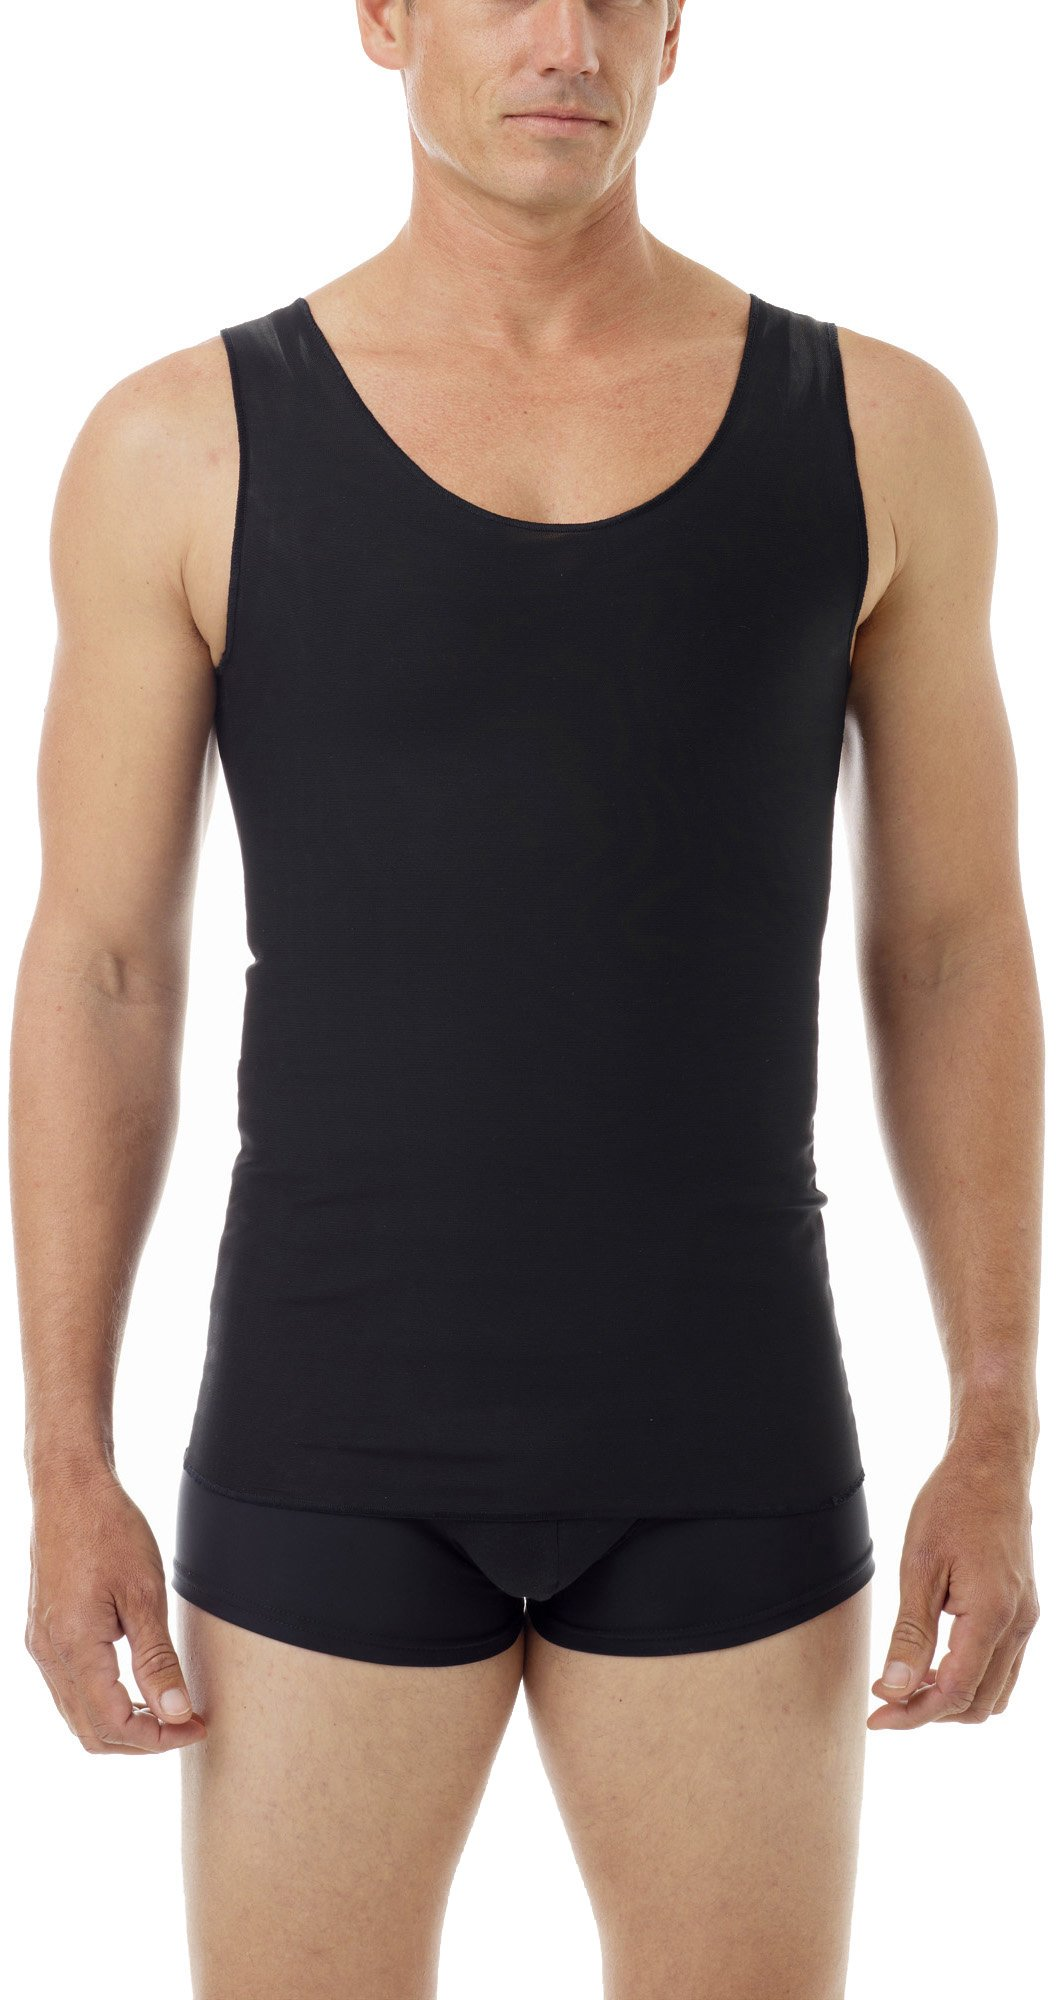 Underworks FTM Gynecomastia Ultimate Chest Binder Tank 997-3-Pack - Black X-Small